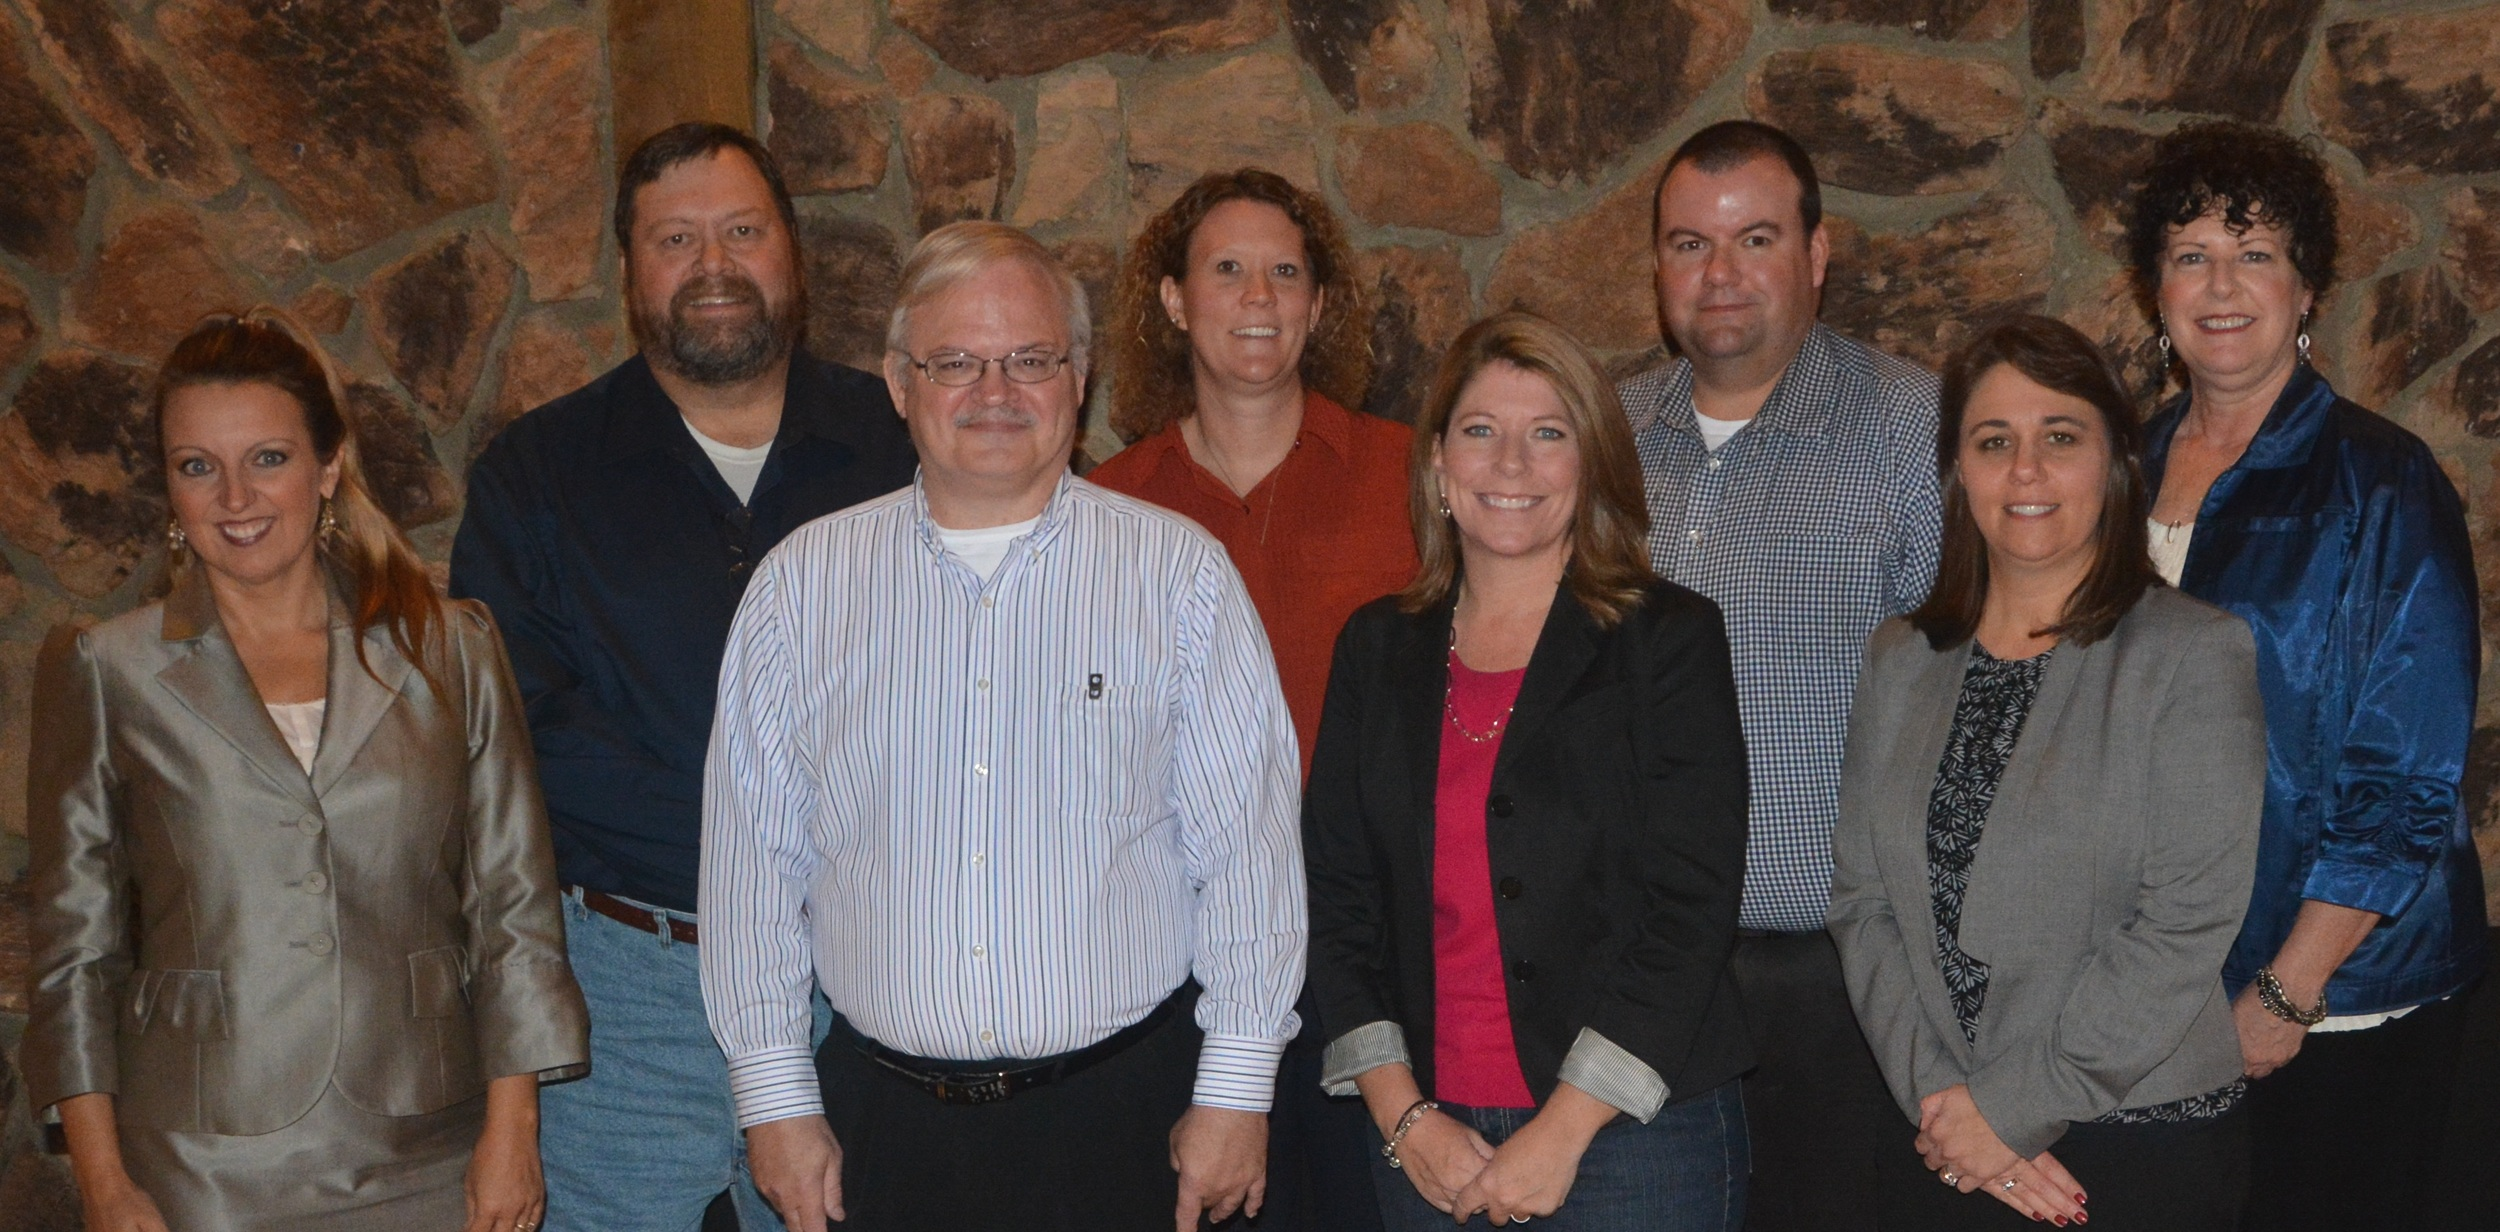 """The Central Ohio Chapter board of directors. Front row (left to right):        Normal   0           false   false   false     EN-US   X-NONE   X-NONE                                  MicrosoftInternetExplorer4                                           Brigitte Sollie, Danny Case, CFE, Melissa Smart, CFE, Laura Aeh . CFE. Back row (left to right): Mike Day, CFE, Chrissie Powers, CFE, Aaron Eckstein, CFE, Mary Lou Turnbull, CFE. Not pictured is Heinz Ickert, CFE.                                                                                                                                                                                                                                                                                                    /* Style Definitions */  table.MsoNormalTable {mso-style-name:""""Table Normal""""; mso-tstyle-rowband-size:0; mso-tstyle-colband-size:0; mso-style-noshow:yes; mso-style-priority:99; mso-style-parent:""""""""; mso-padding-alt:0in 5.4pt 0in 5.4pt; mso-para-margin:0in; mso-para-margin-bottom:.0001pt; mso-pagination:widow-orphan; font-size:10.0pt; font-family:""""Times New Roman"""",""""serif"""";}"""